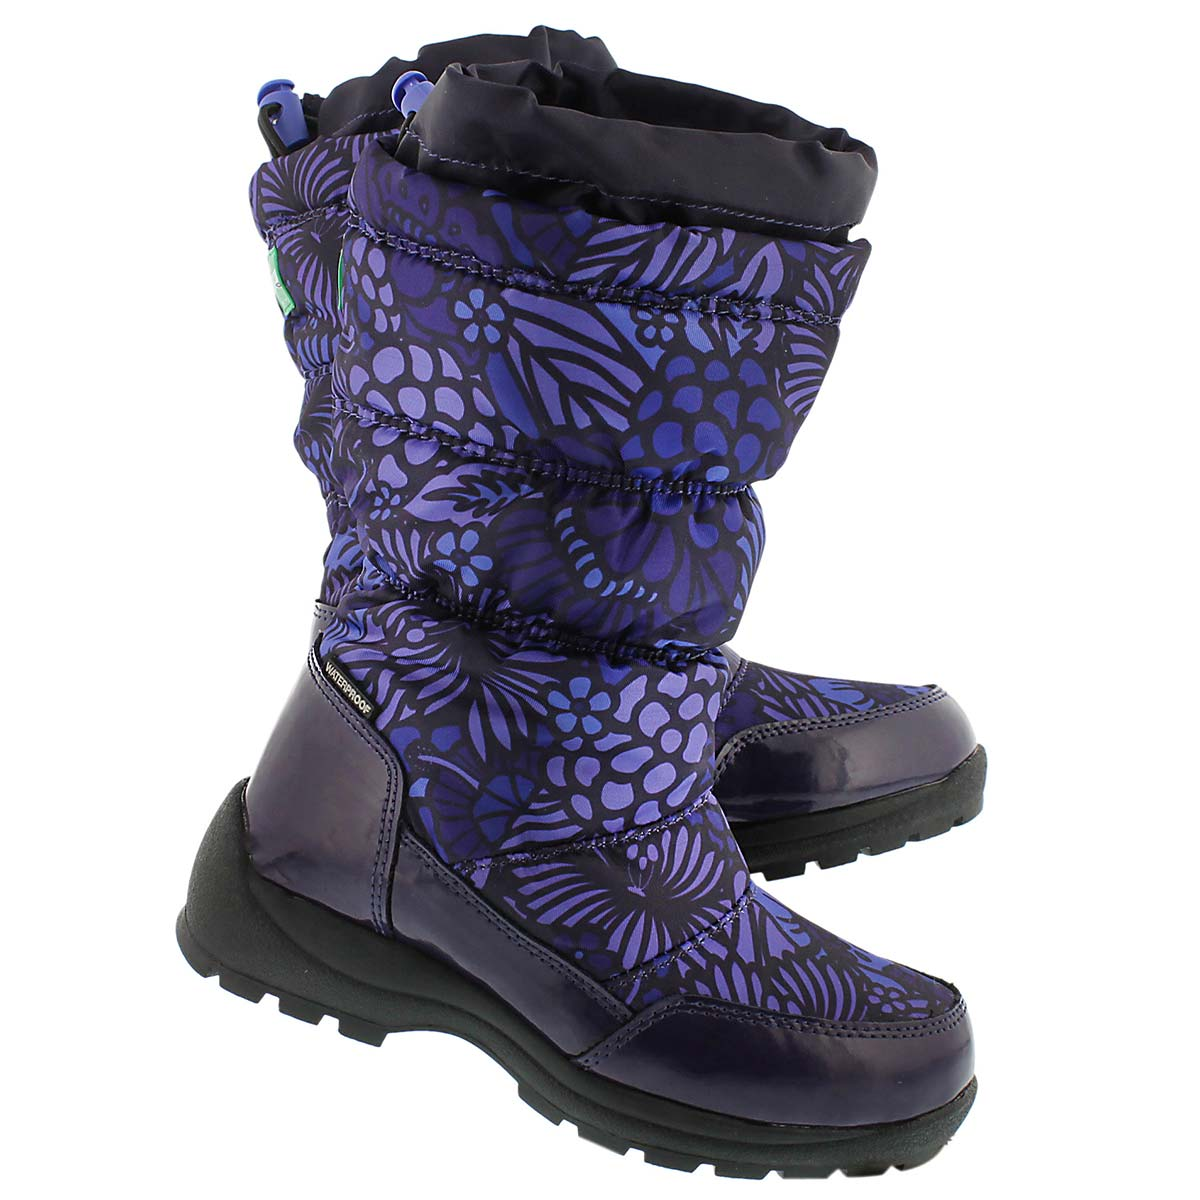 Grls Mikki purple nylon wtpf winter boot